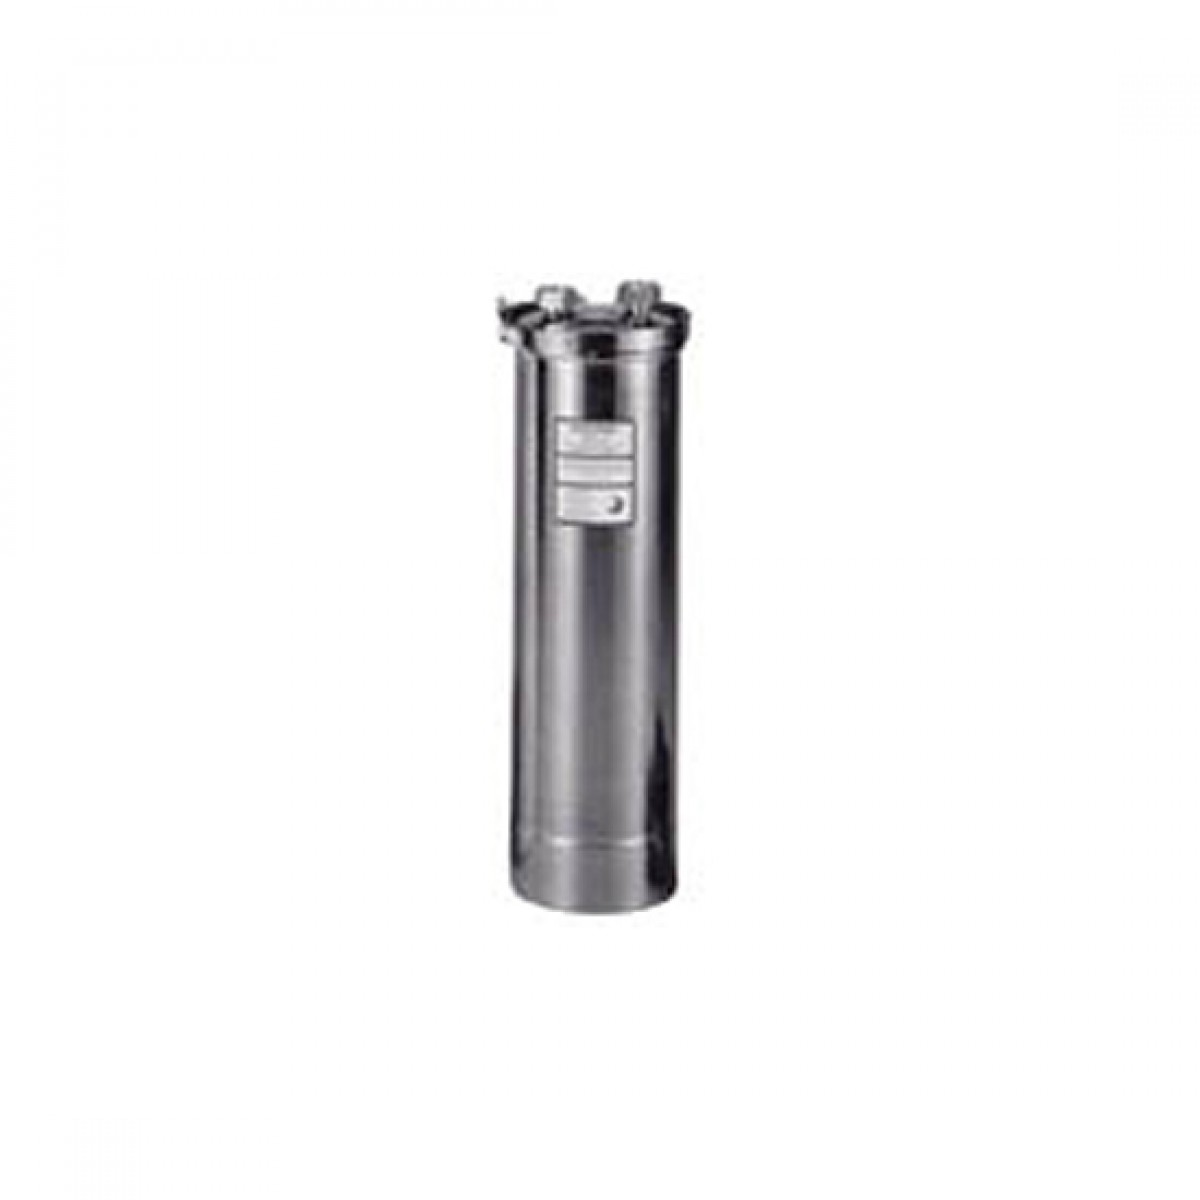 Whole House Filter Everpure T20 Whole House Filter Ev9370 00